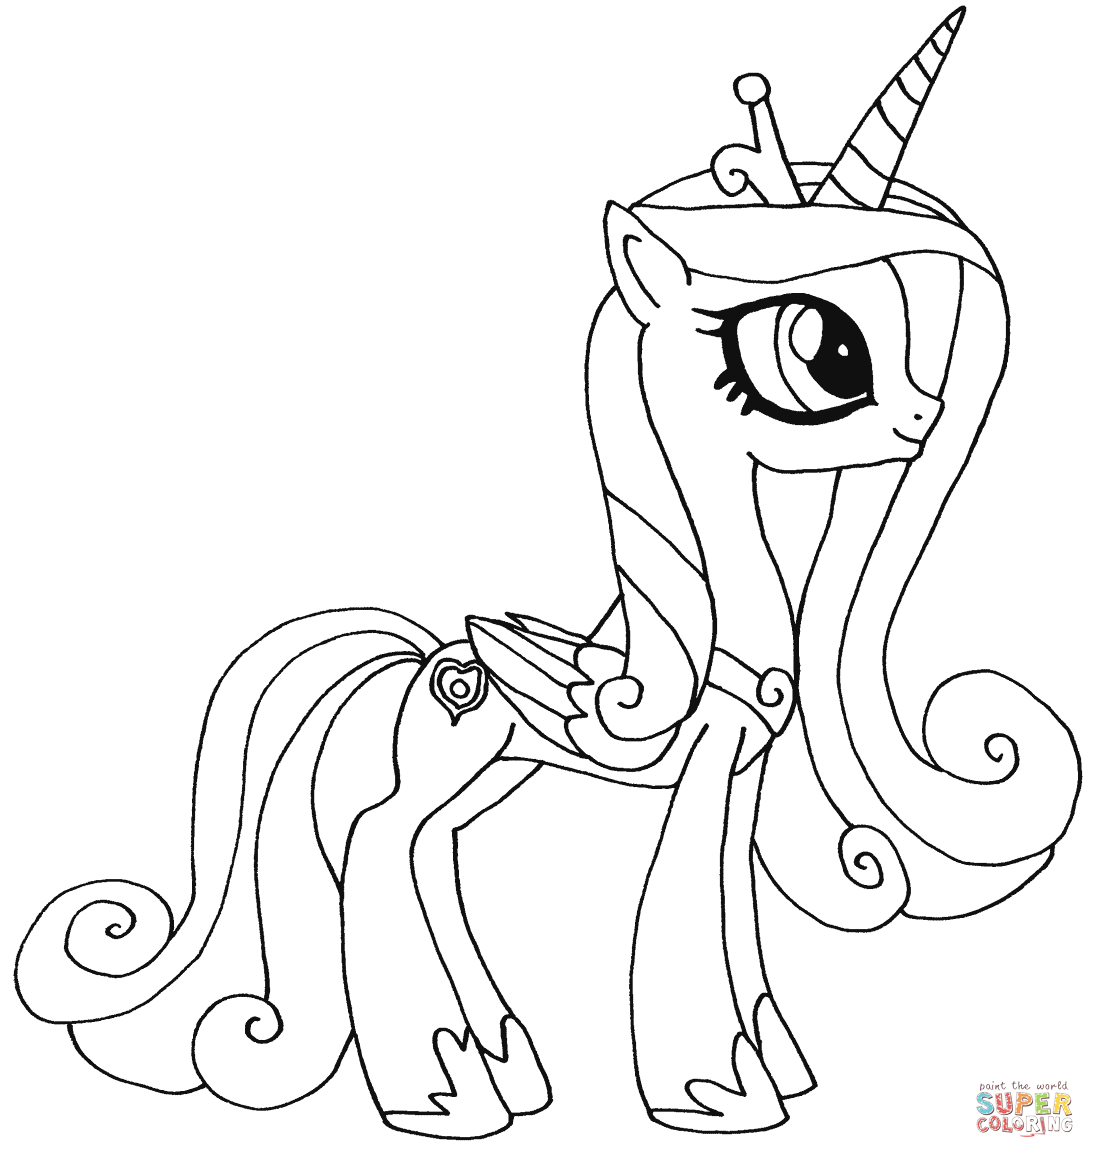 Drawn my little pony colouring picture Free Princess Pony Coloring Pages